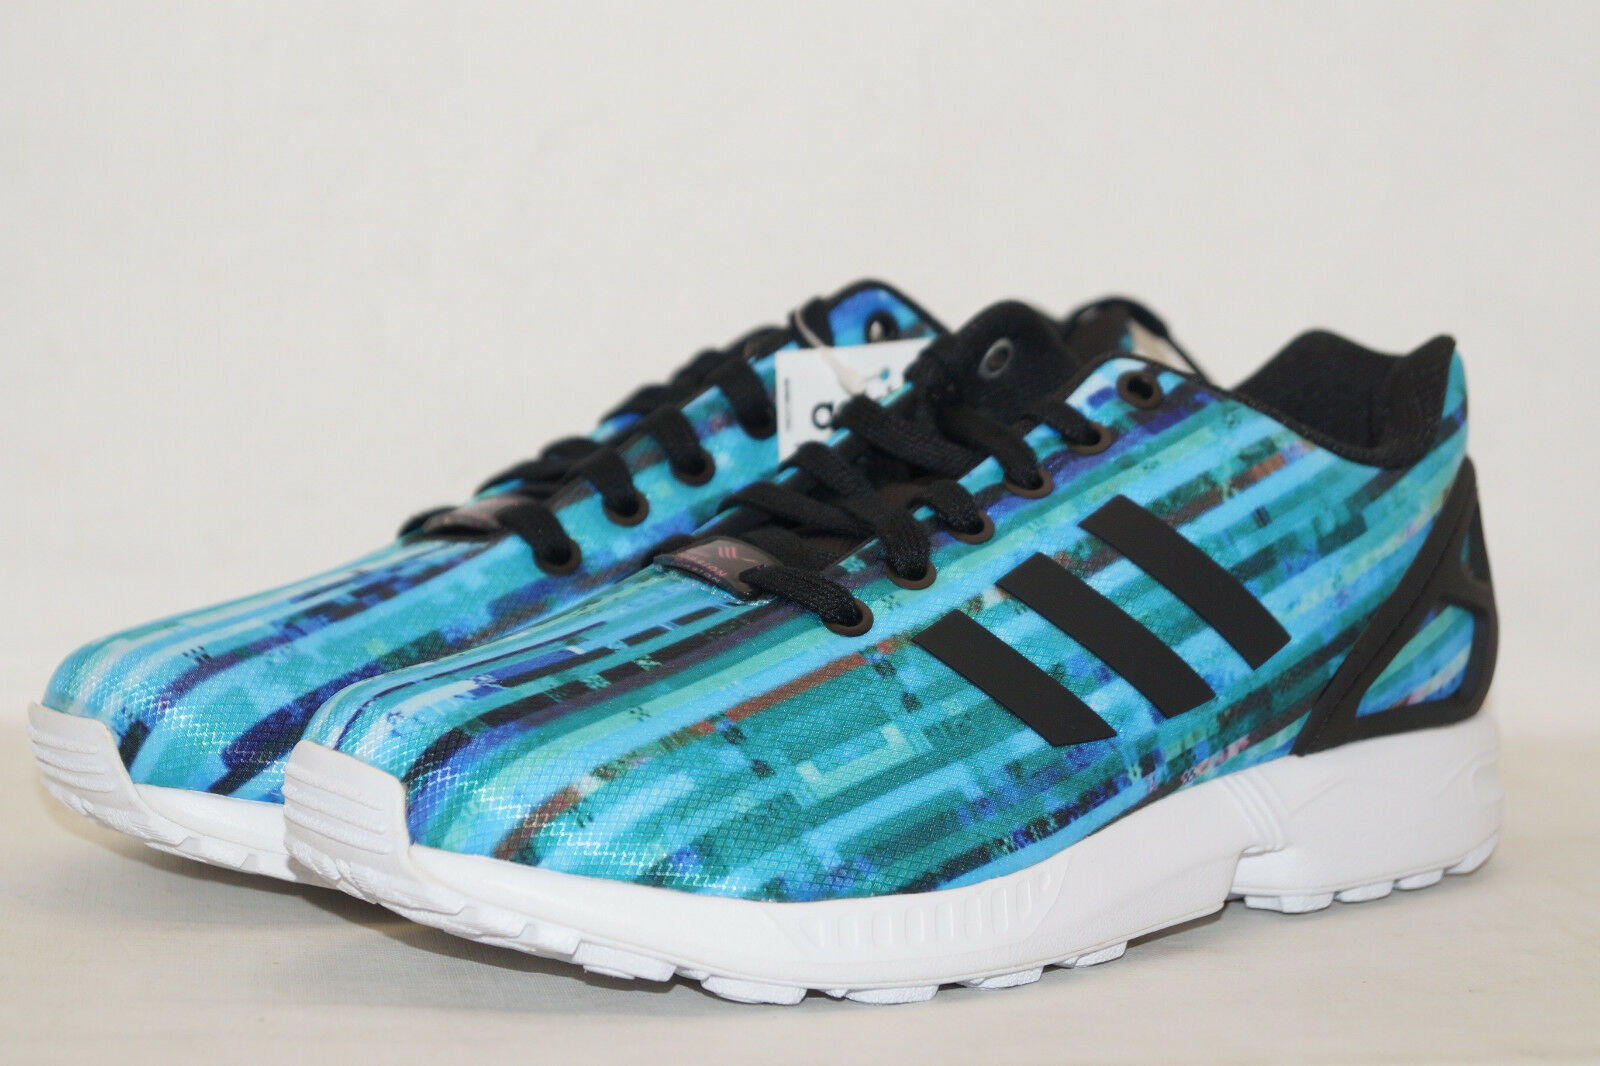 Adidas ZX FLUX TORSION Running EU 41.3 UK 7.5 Running TORSION Schuhes türkis s76505 Laufschuhe 8716c9